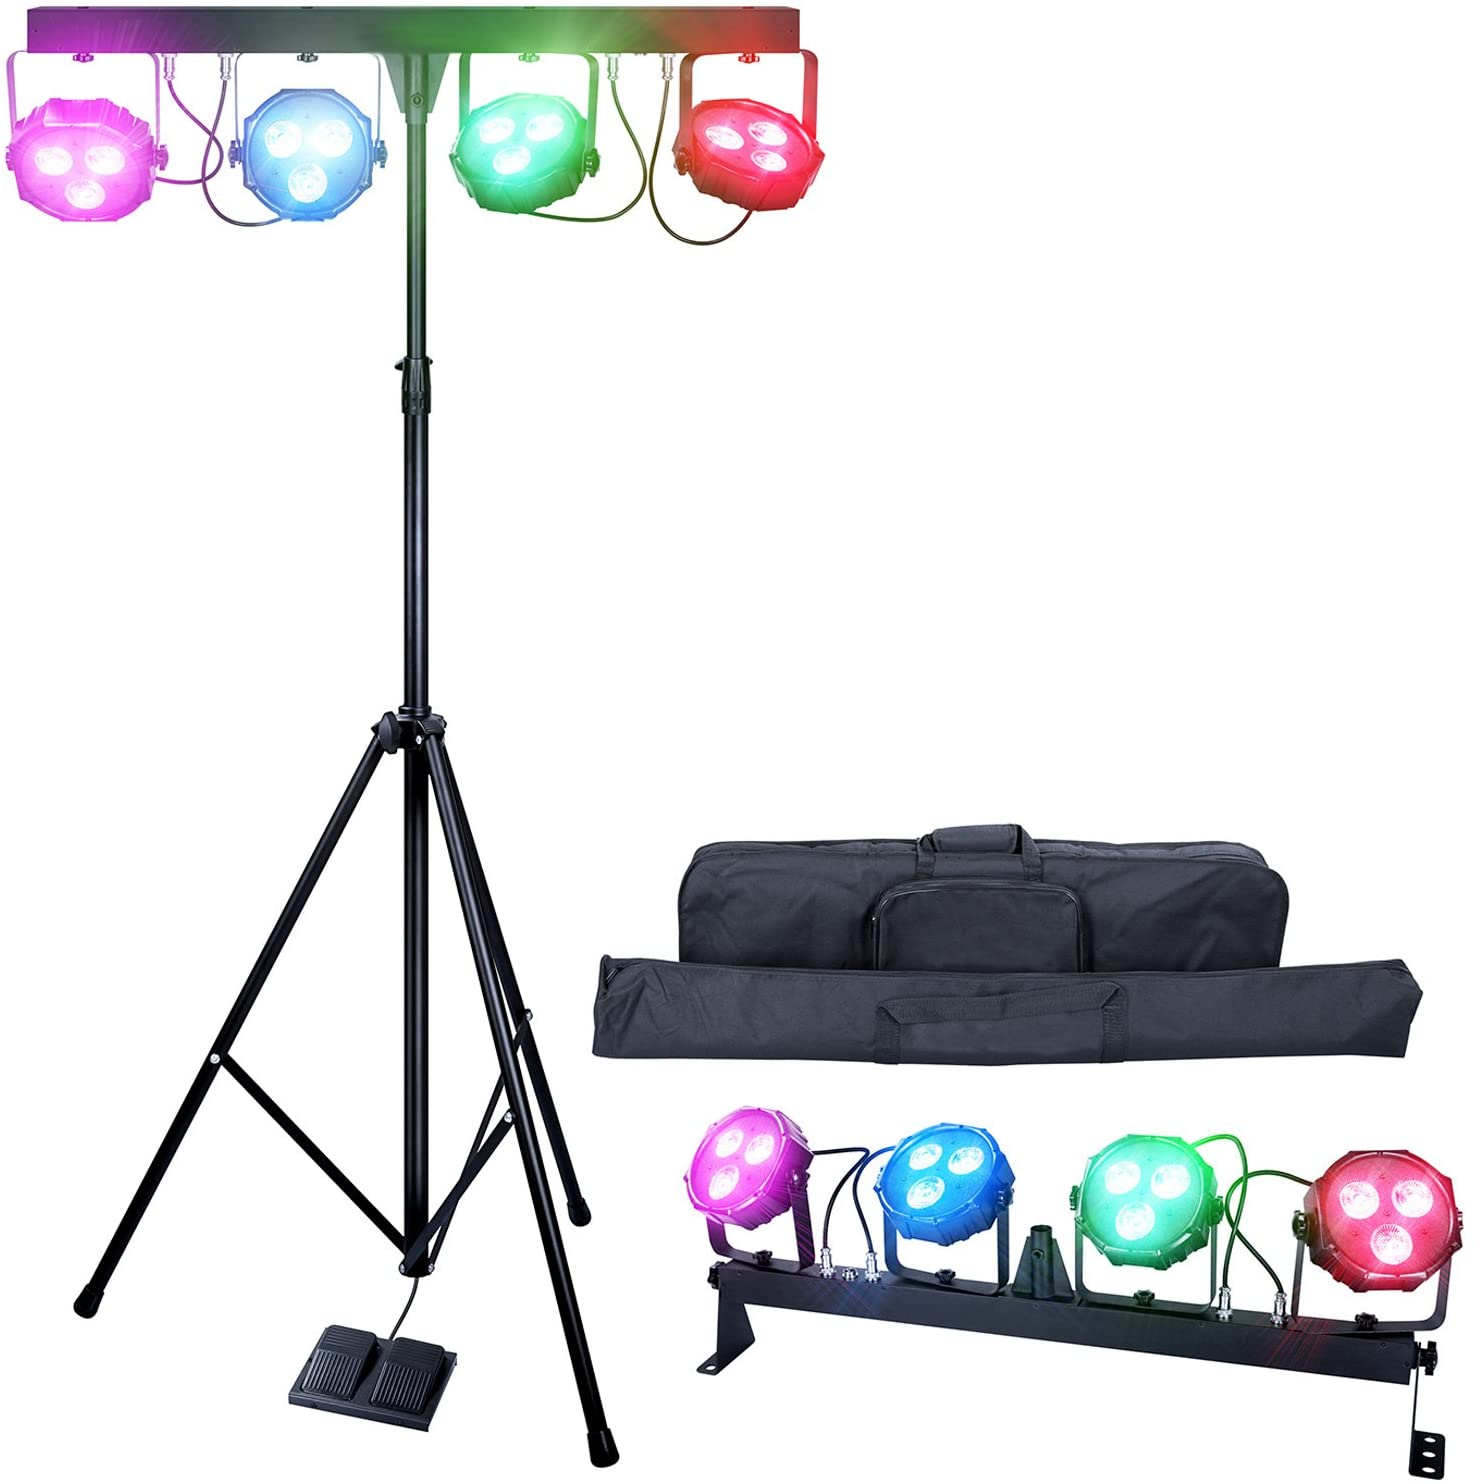 DragonX 4 Bar LED mobile DJ Stage Lighting Package